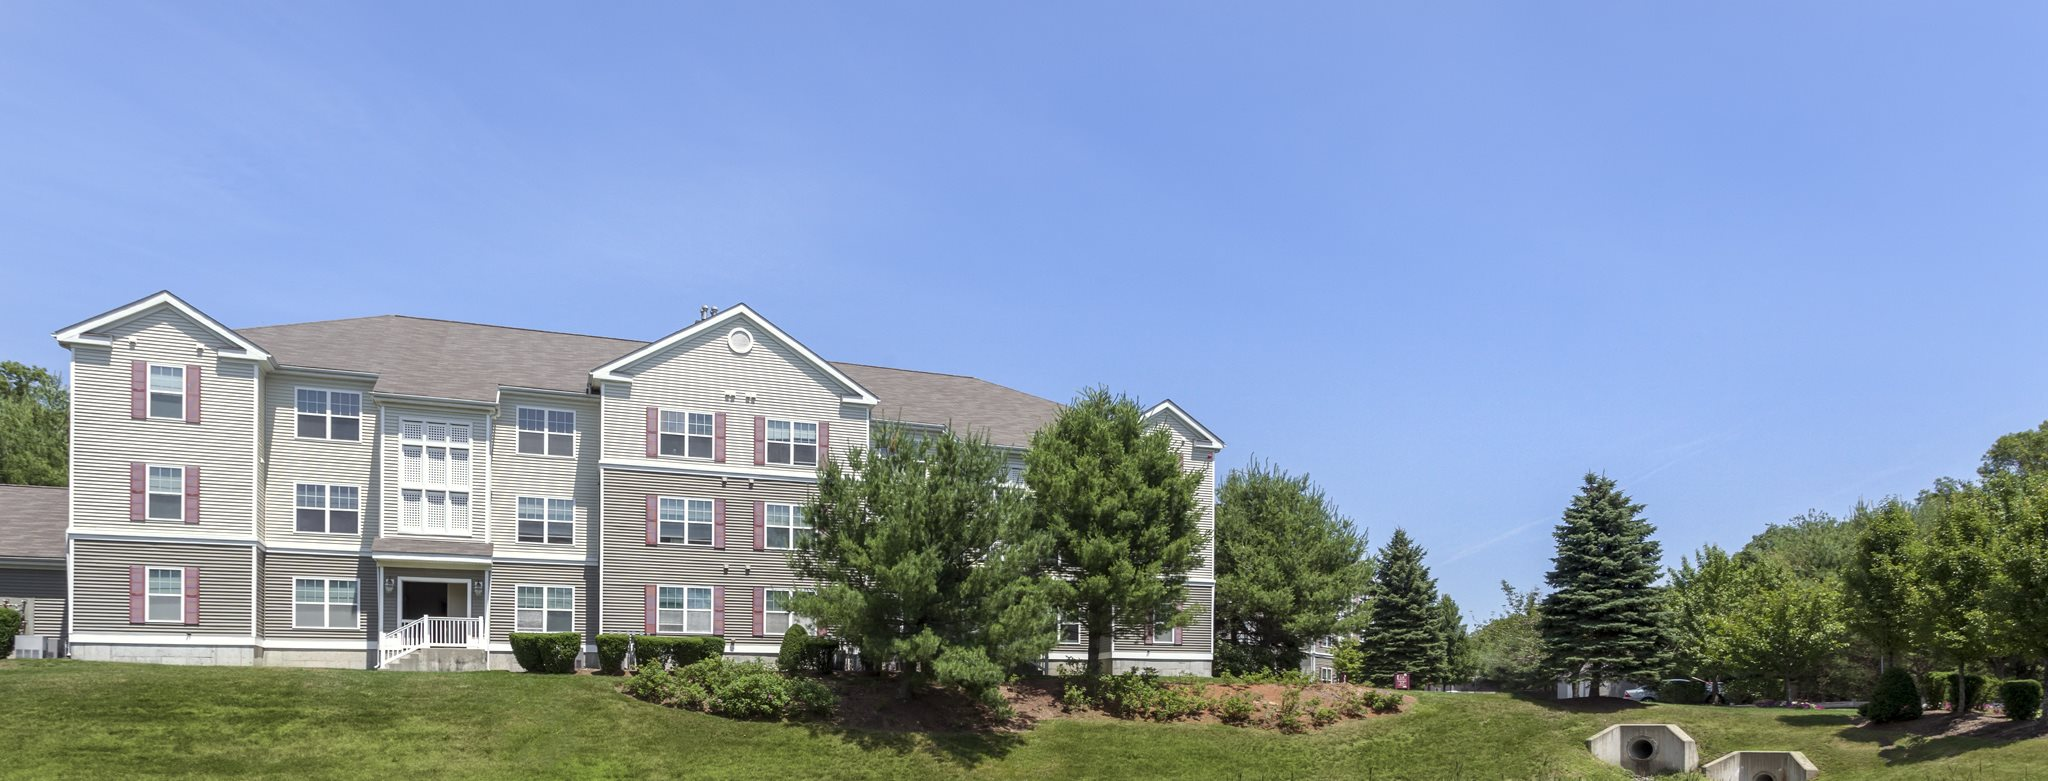 Landscaping at Franklin Commons Apartments, 8 Gatehouse Lane, Franklin, MA 02038